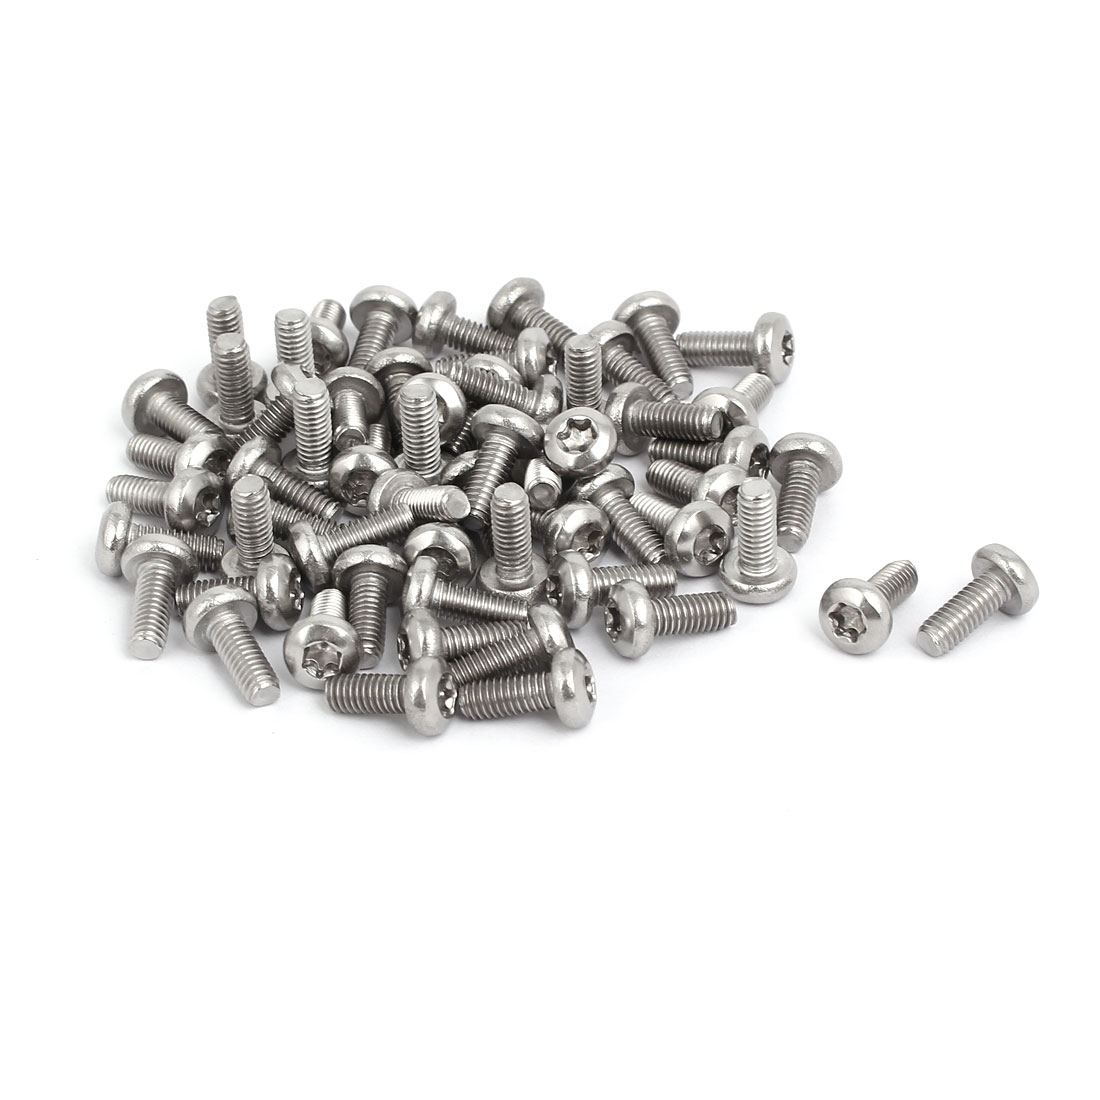 M4x10mm 304 Stainless Steel Button Head Torx Screws Bolts T10 Drive 60pcs